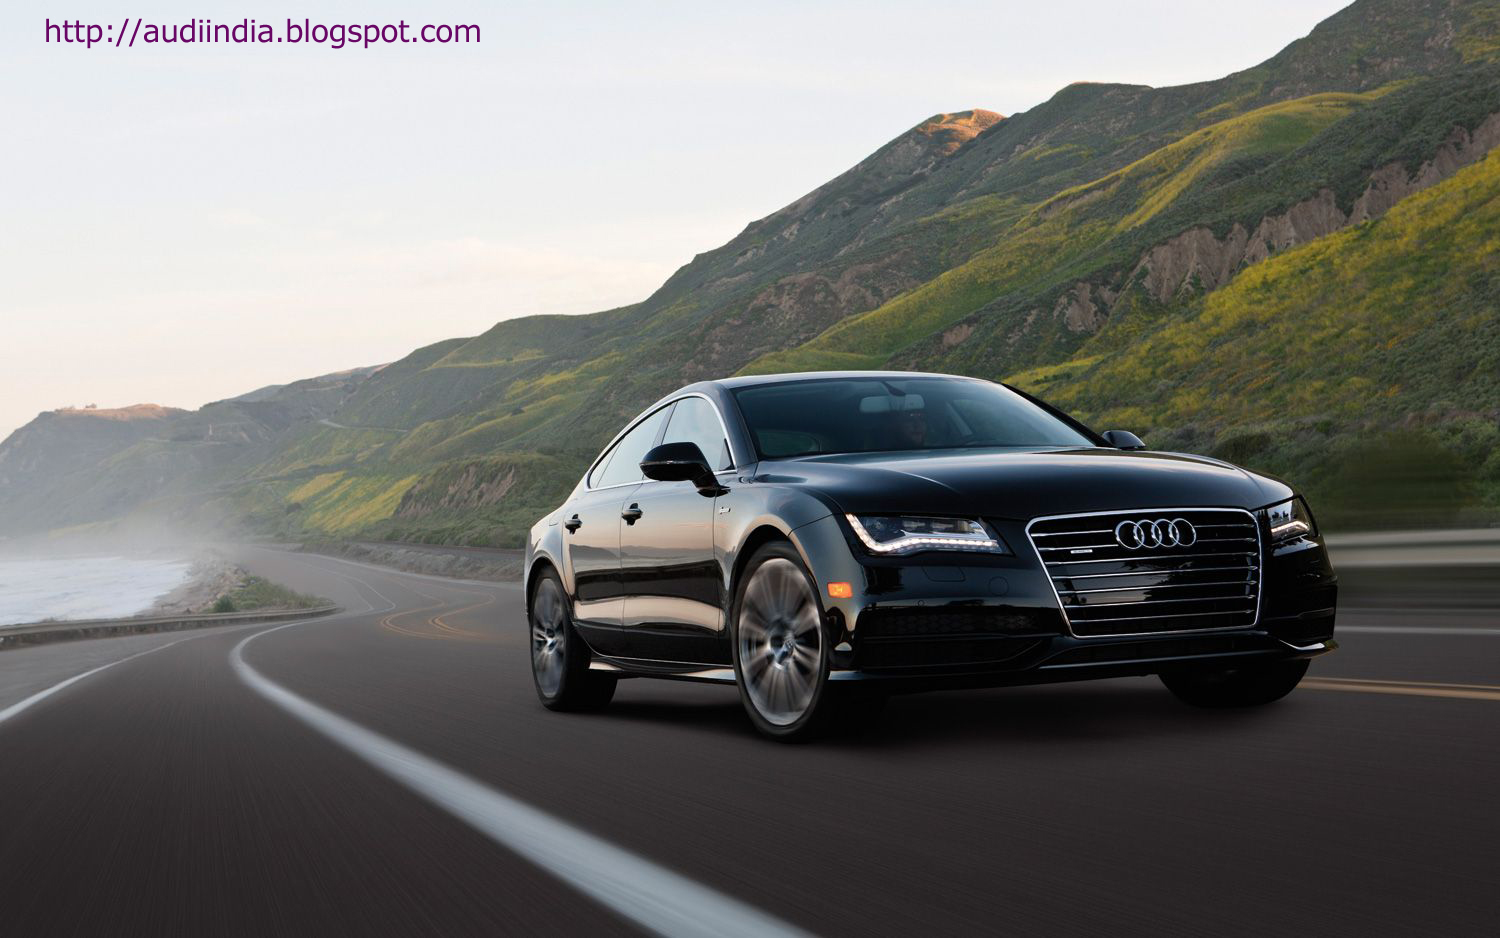 phantom black 2012 audi a7 sportback luxury liberated the world of audi. Black Bedroom Furniture Sets. Home Design Ideas